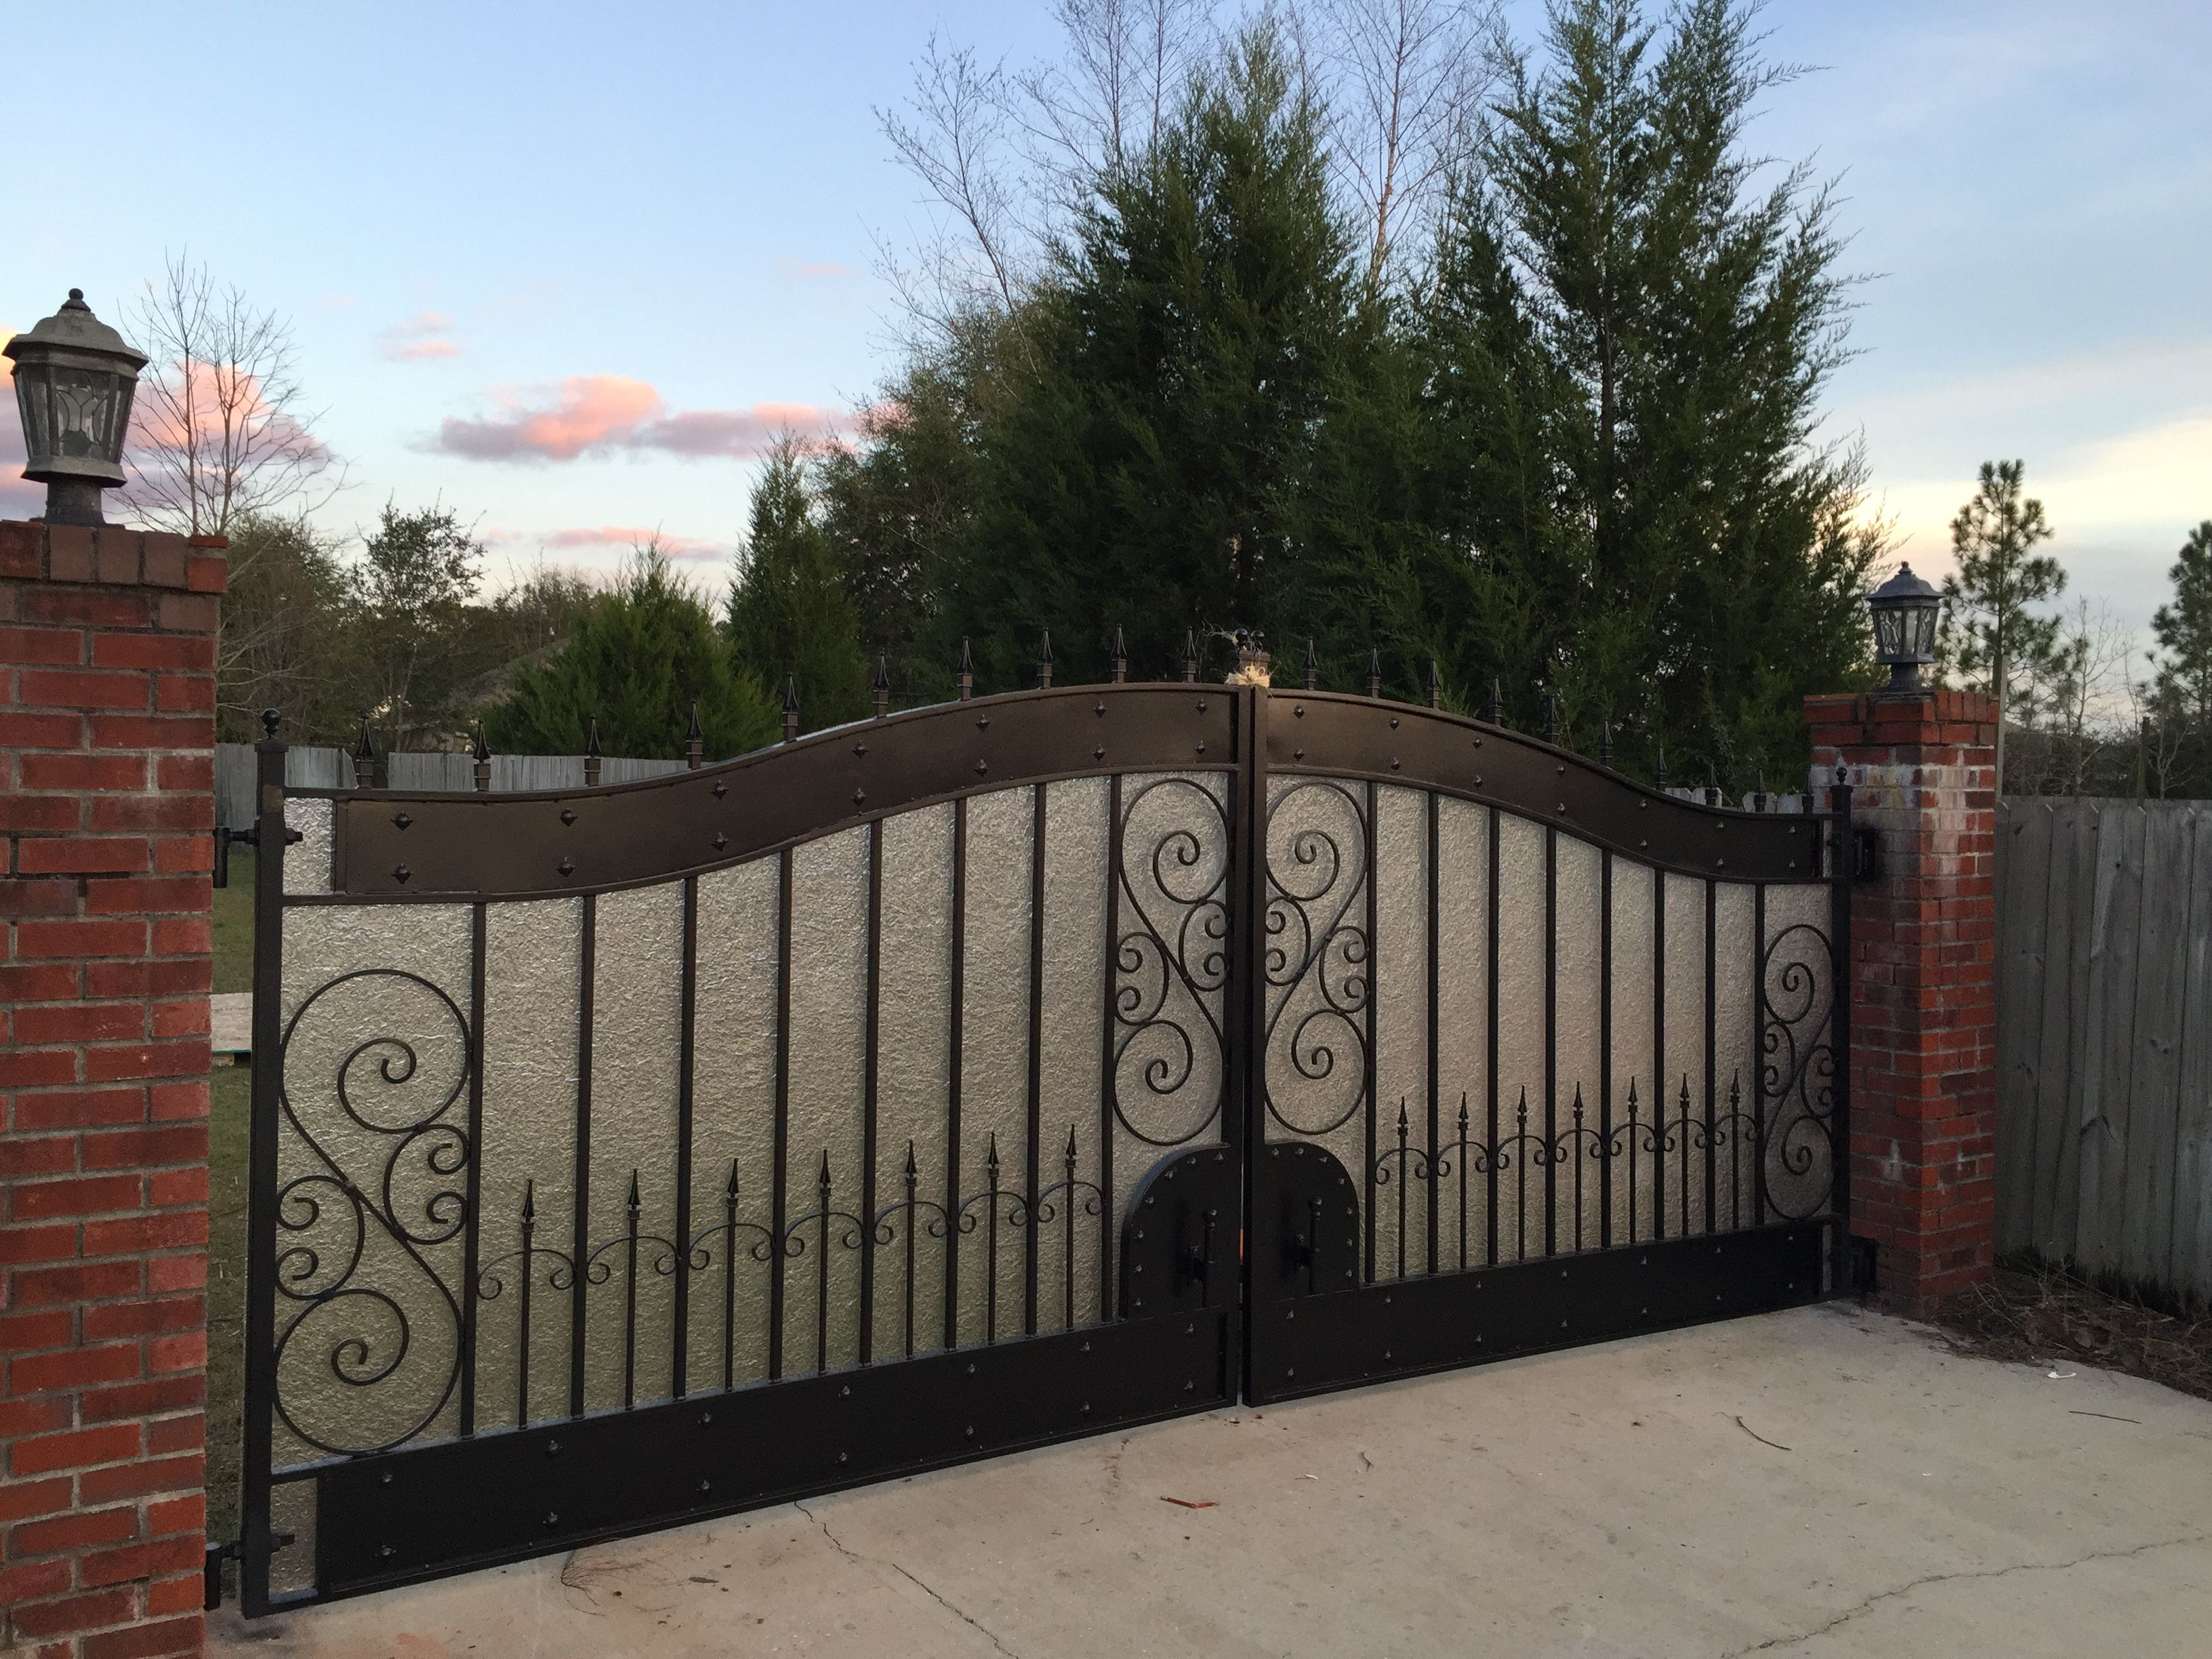 Krinkglass Gives This Hyde Park Driveway Gate The Privacy Desired